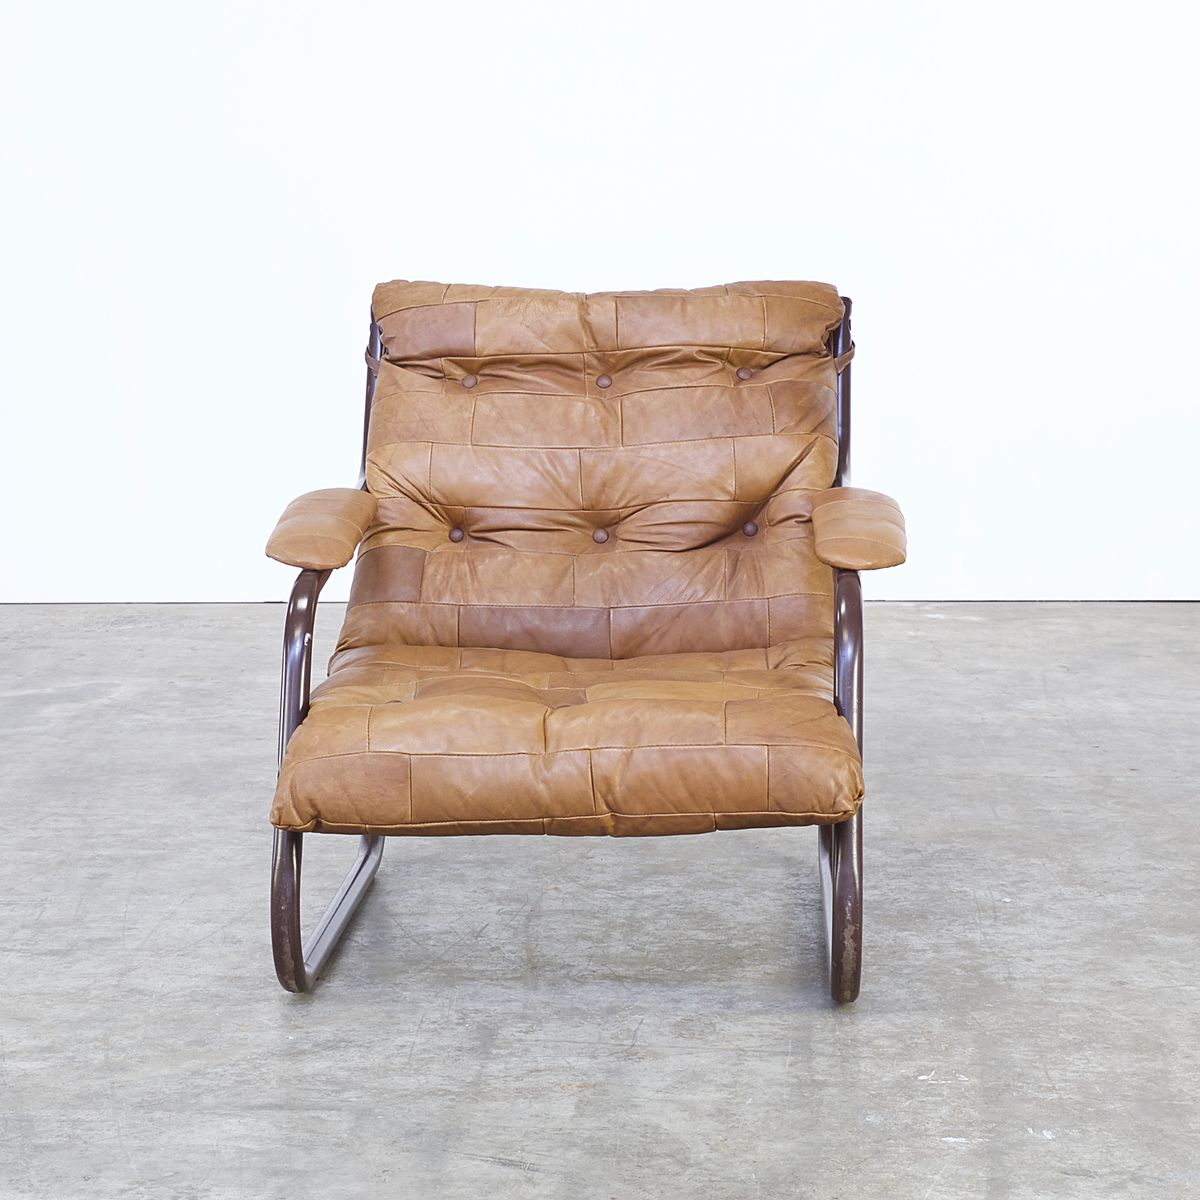 Vintage cognac leather patchwork lounge chair 1970s for sale at pamono - Vintage lyon lounge ...